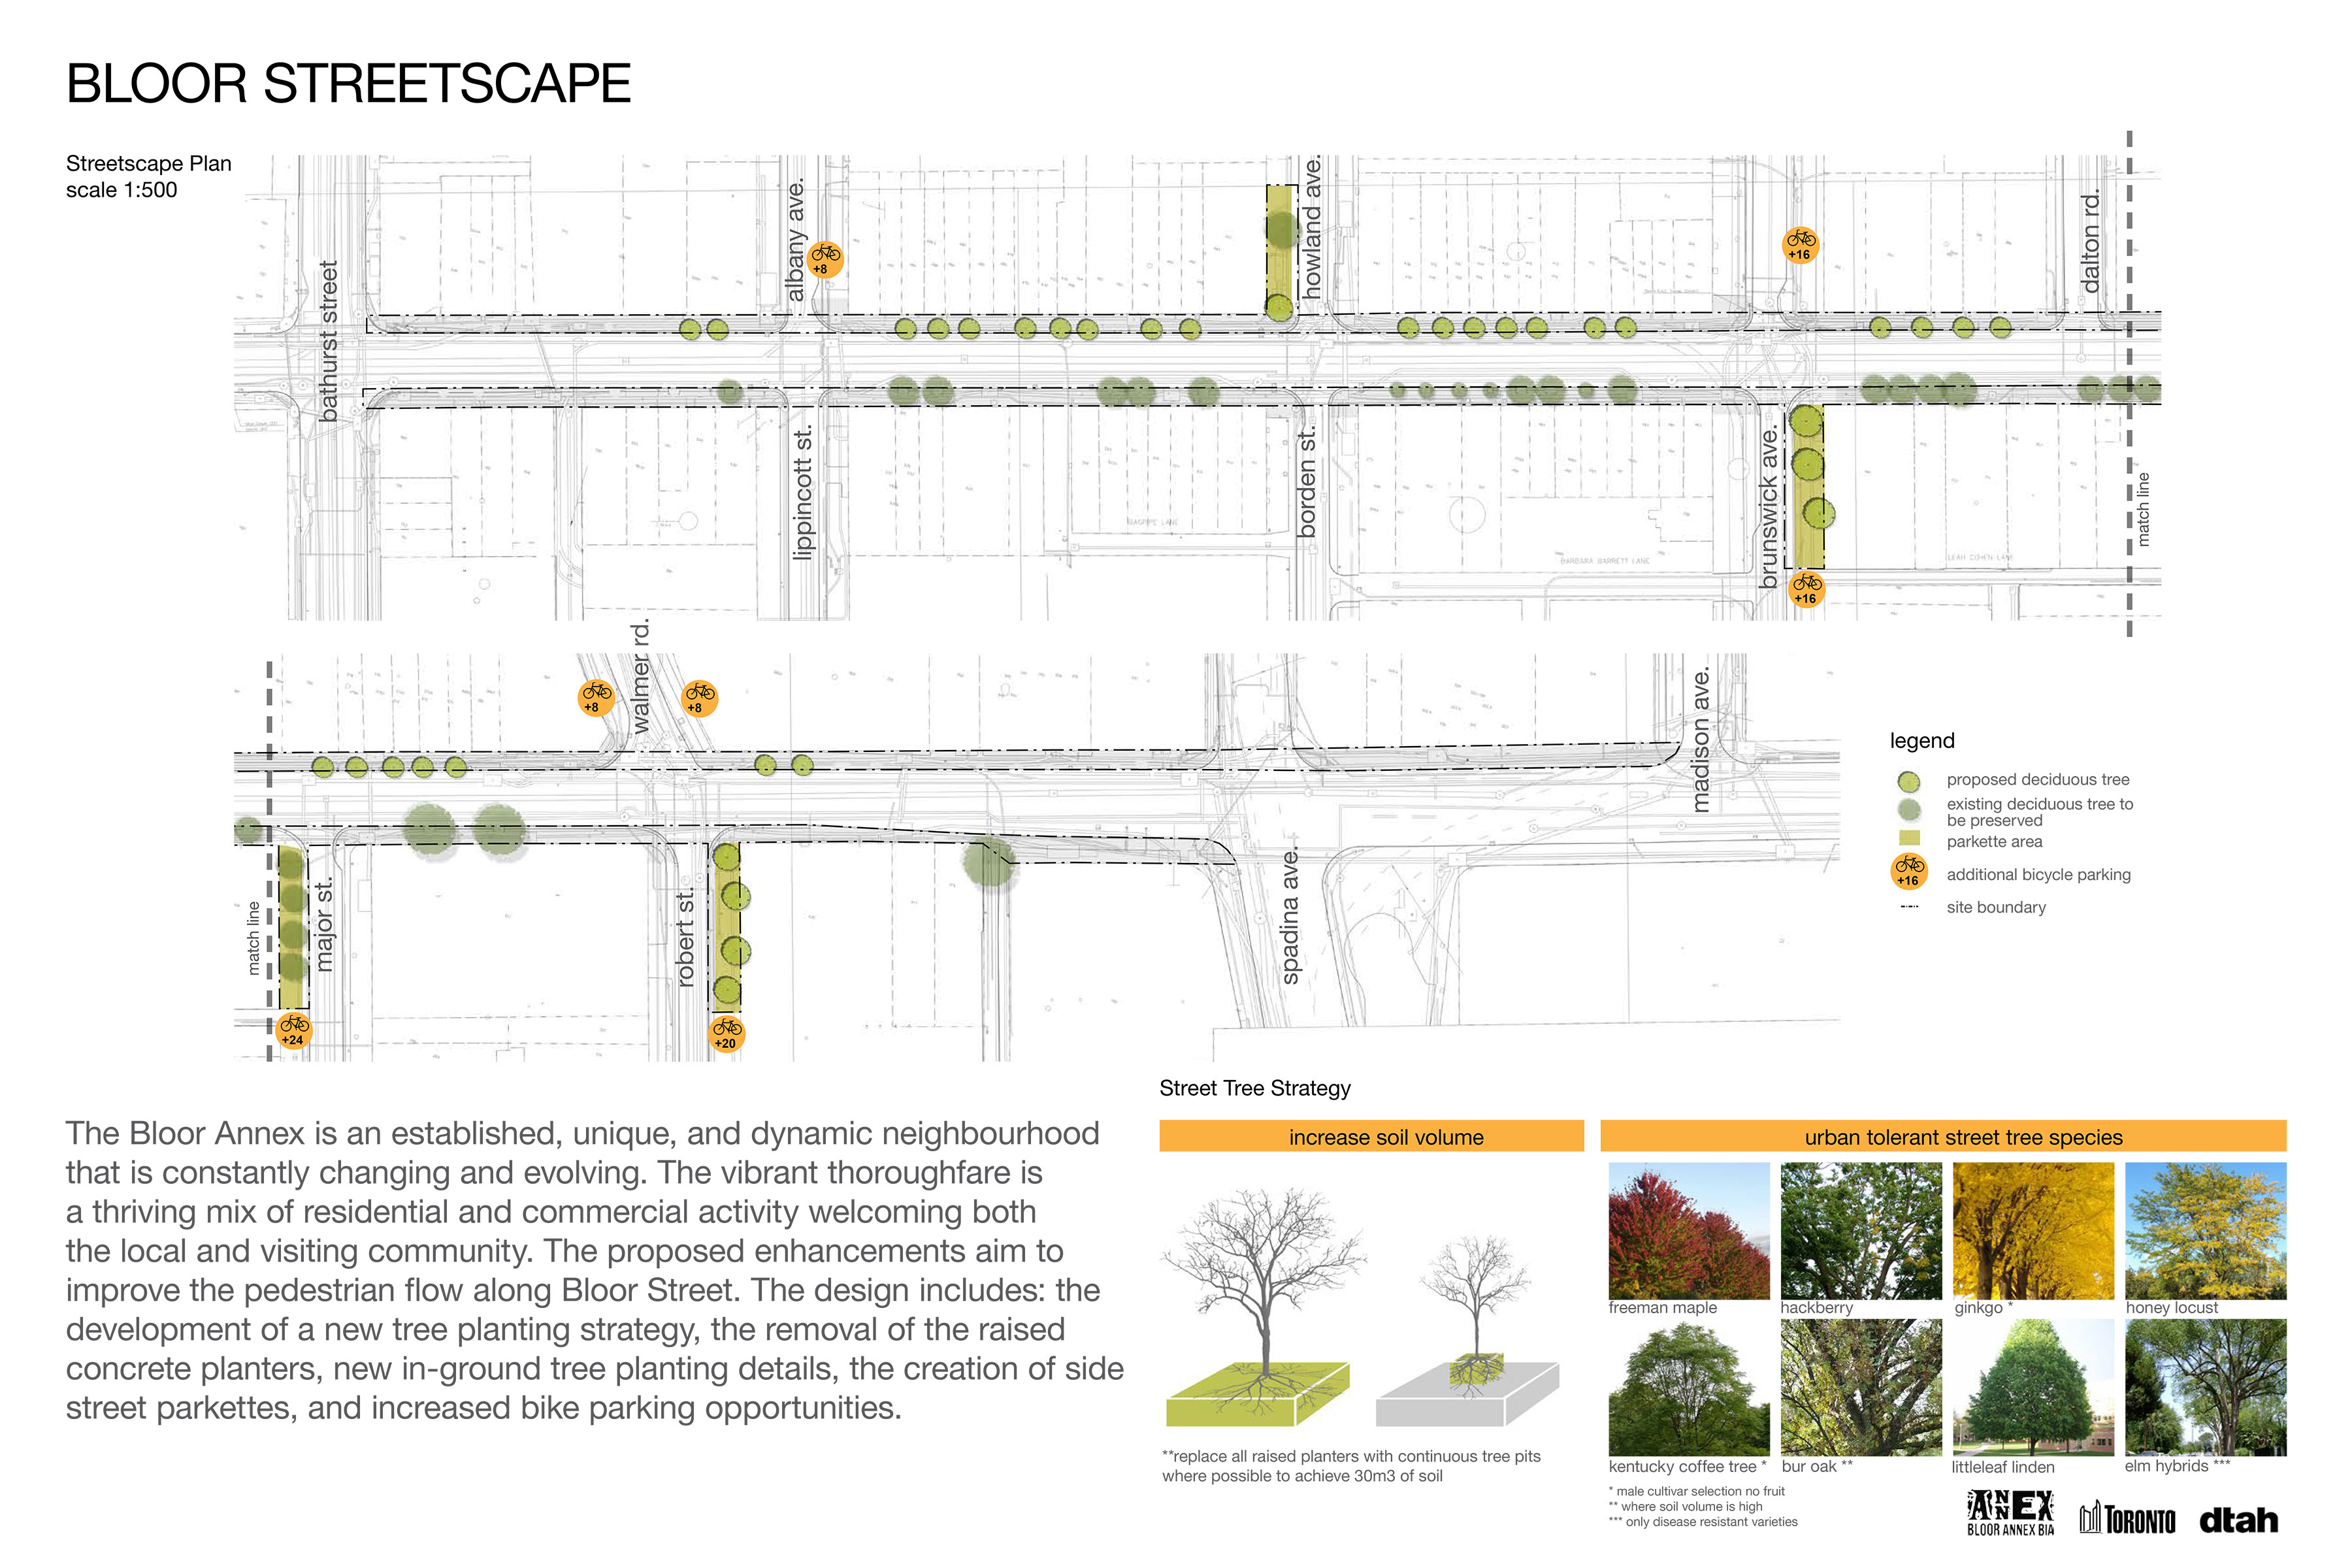 Plans for Bloor Streetscape